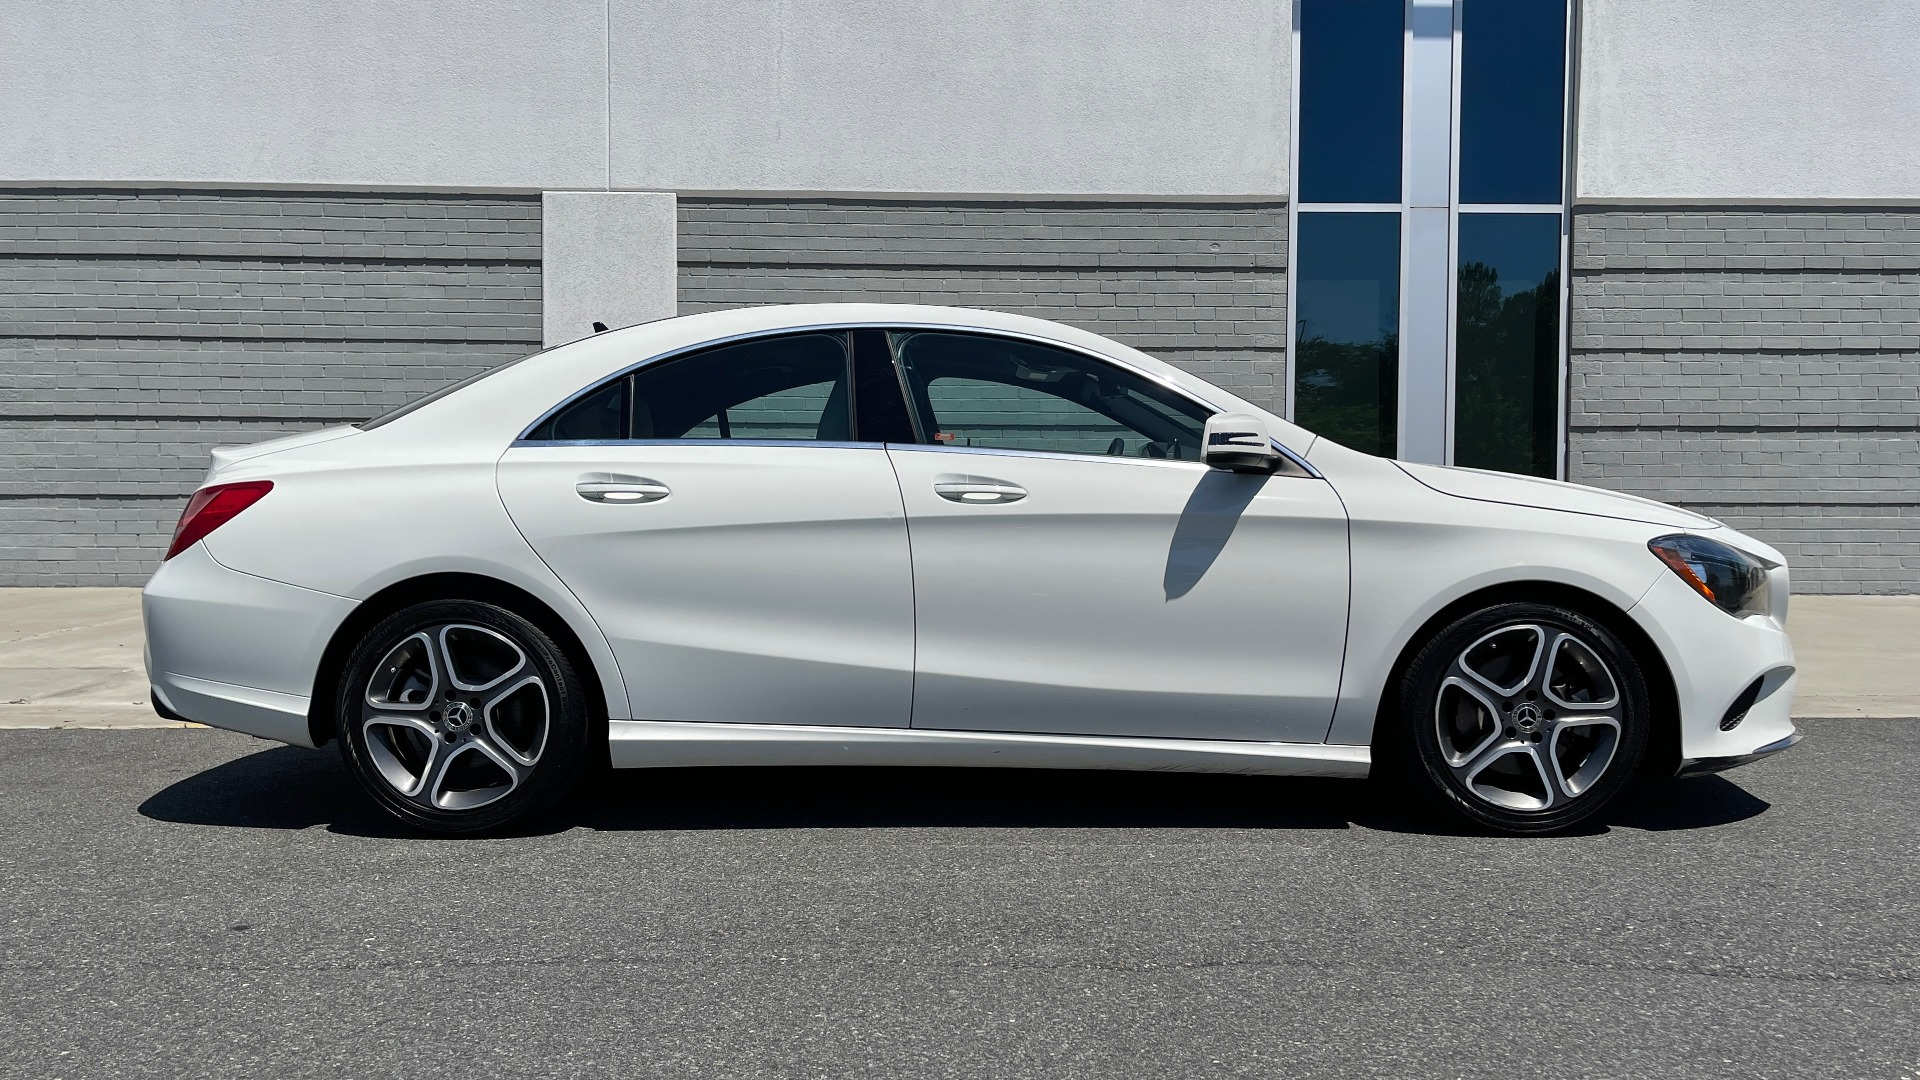 Used 2018 Mercedes-Benz CLA 250 PREMIUM / CONV PKG / APPLE / PANO-ROOF / REARVIEW for sale $29,795 at Formula Imports in Charlotte NC 28227 4